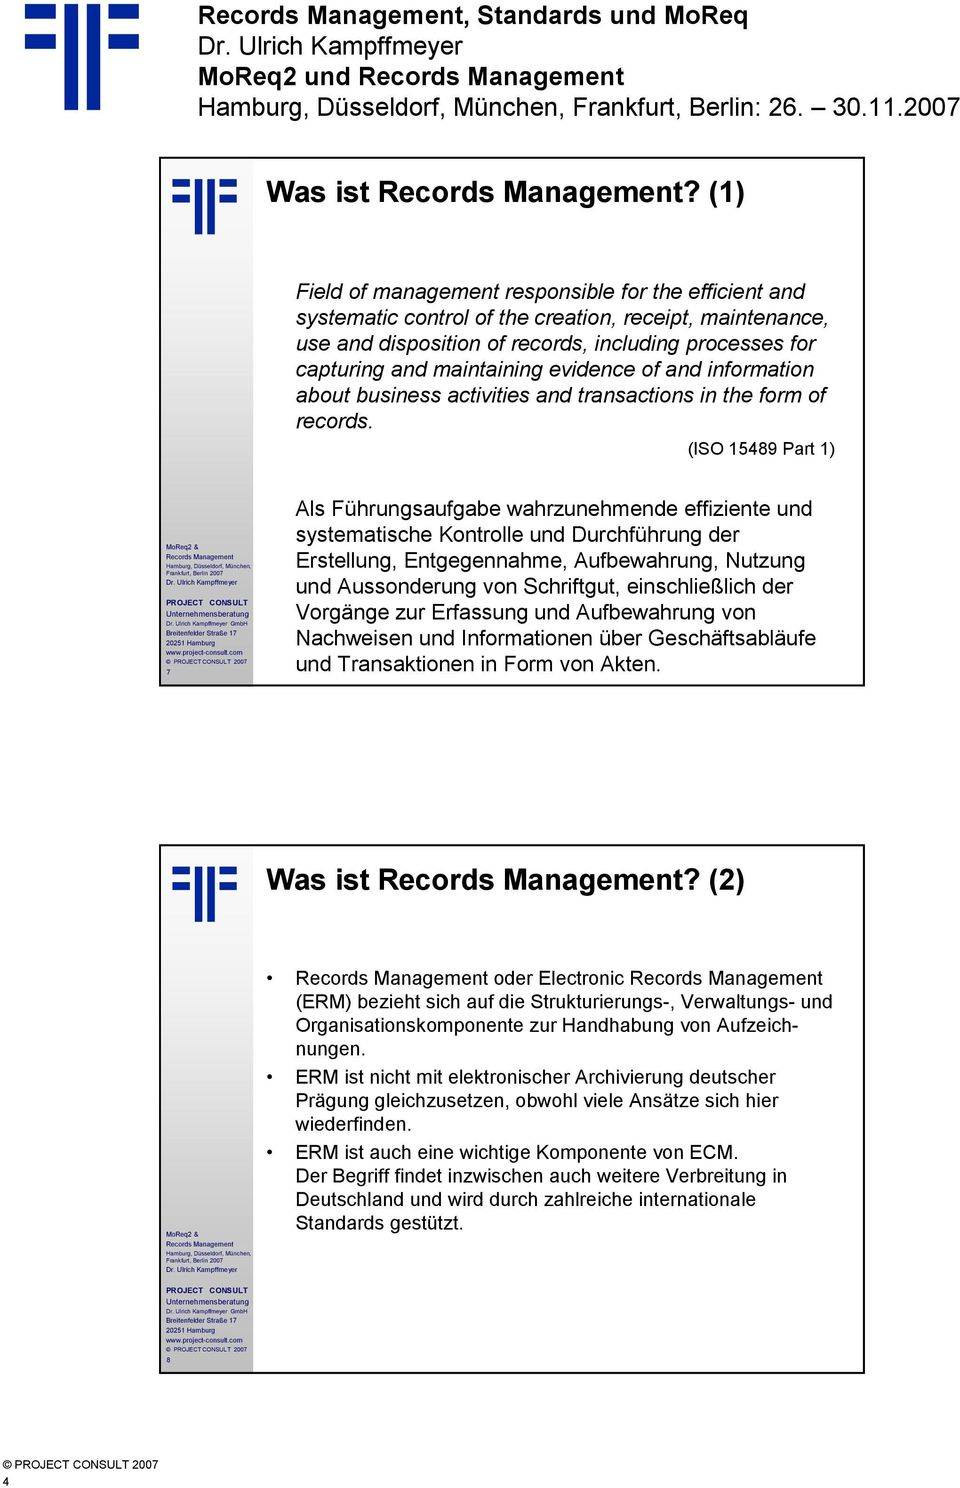 evidence of and information about business activities and transactions in the form of records.